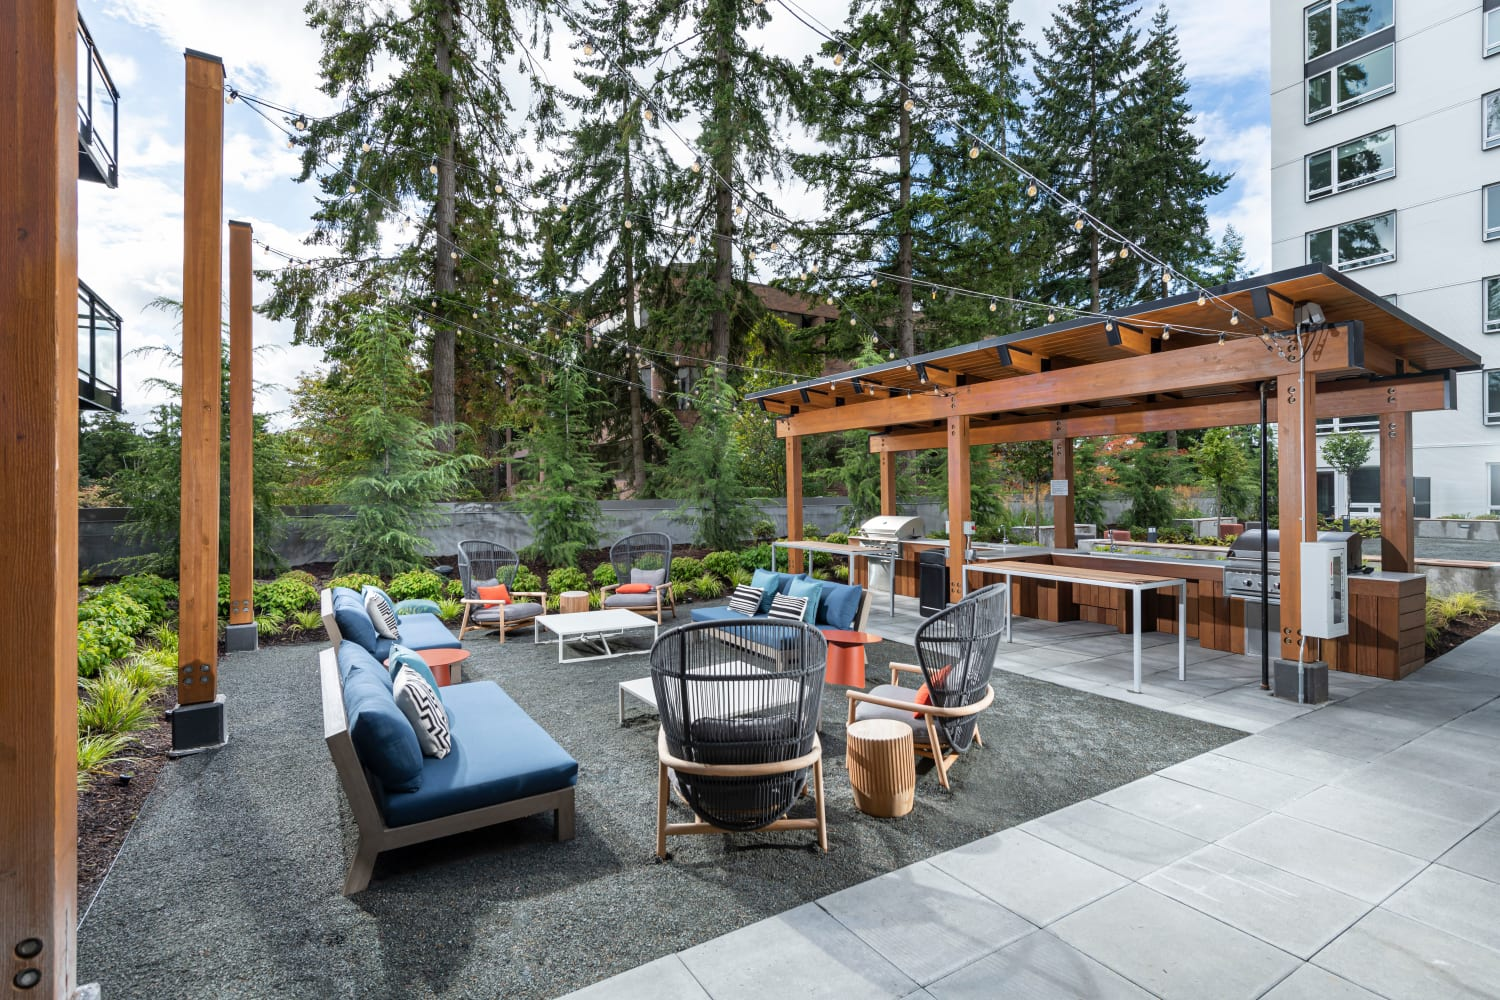 BBQ and picnic area at Nightingale in Redmond, Washington